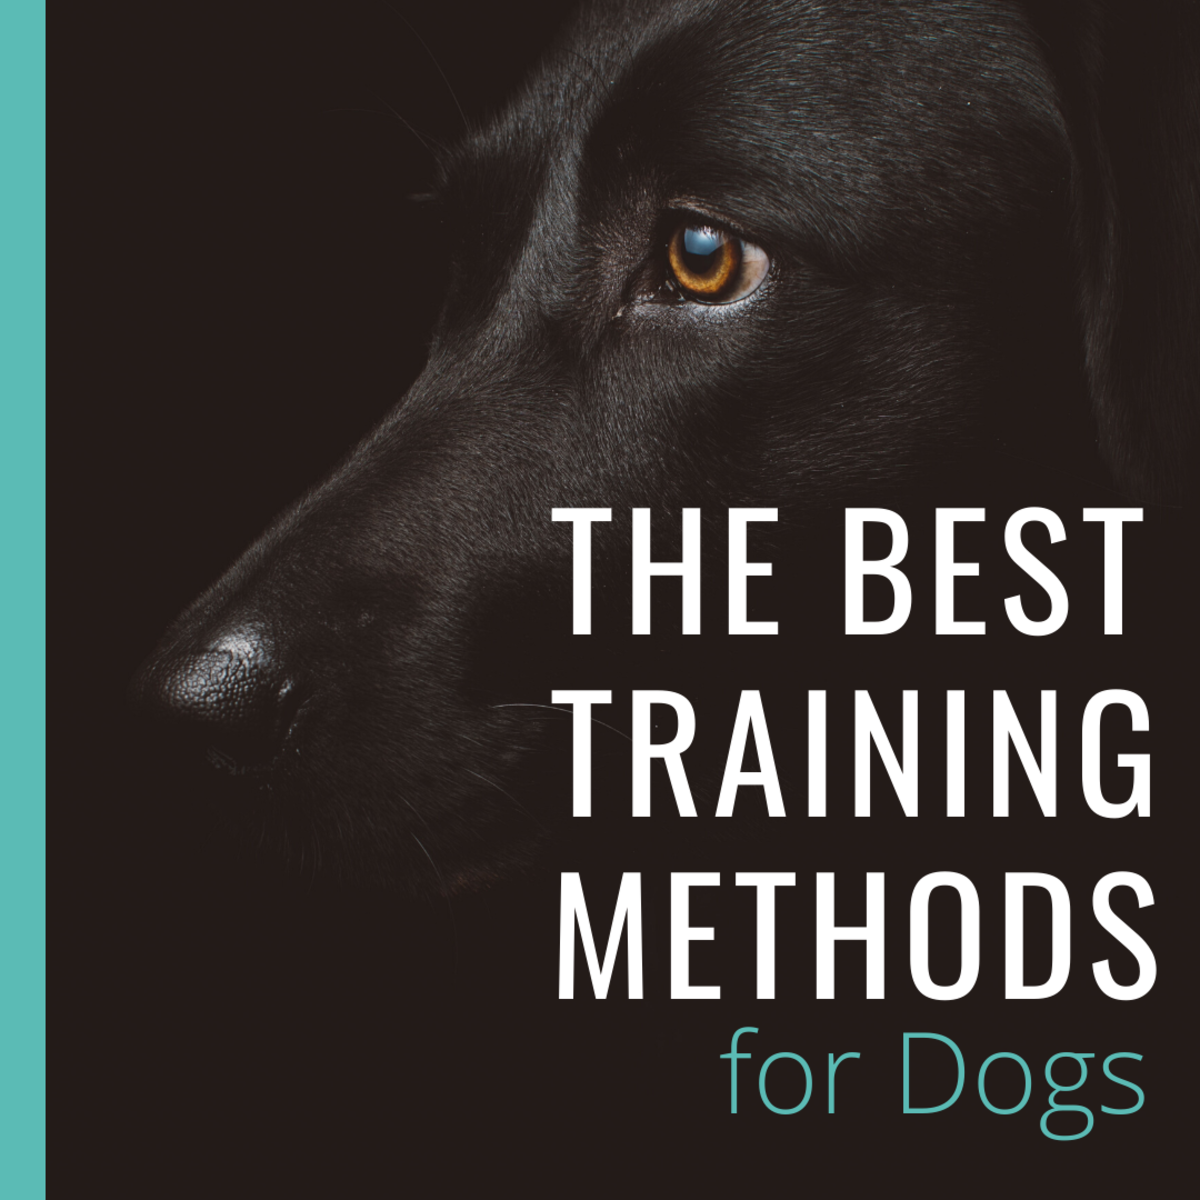 What Is the Best Training Method for Dogs?